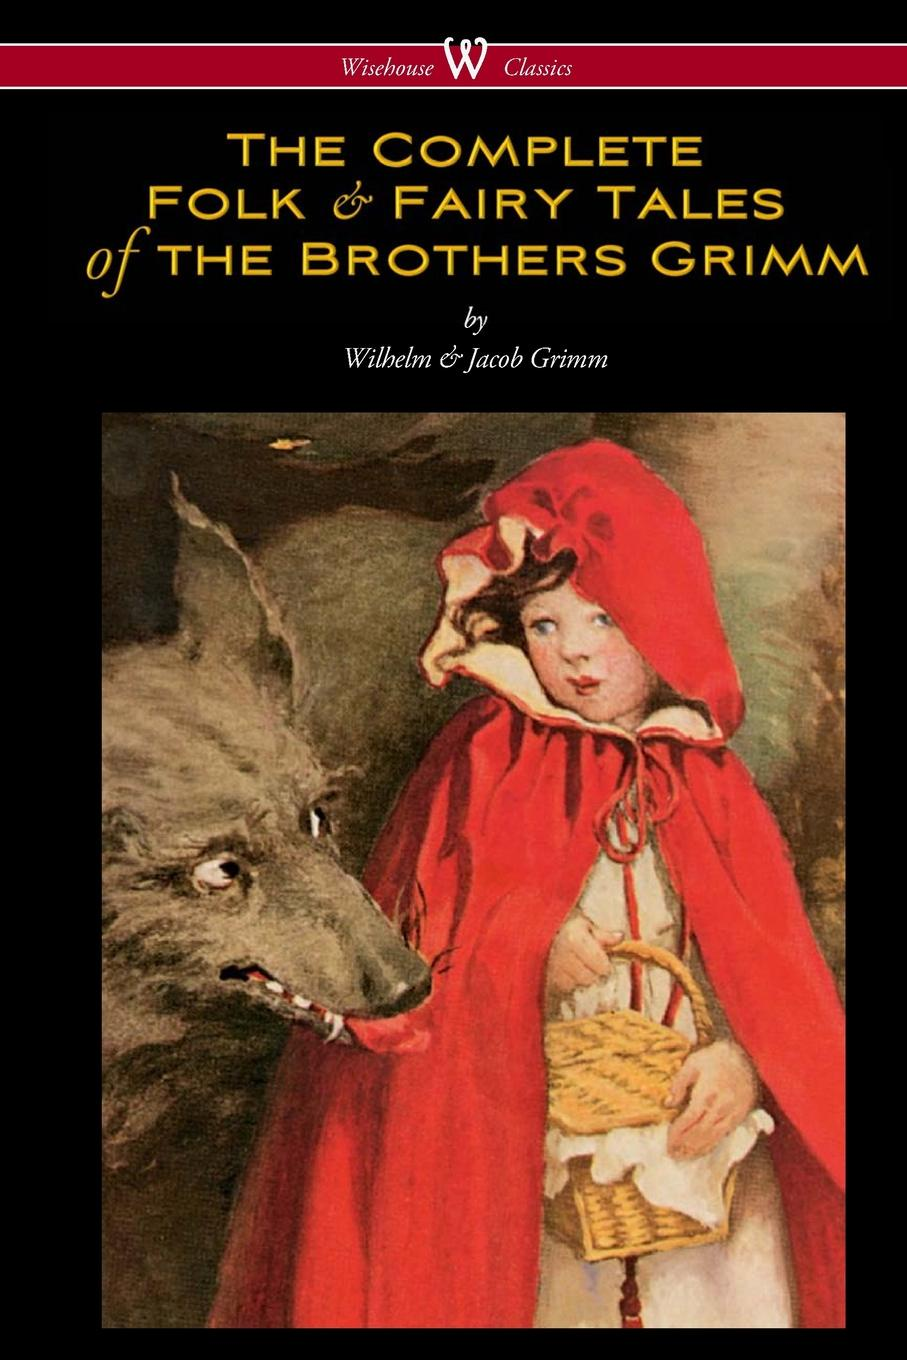 Wilhelm Grimm, Jacob Grimm The Complete Folk & Fairy Tales of the Brothers Grimm (Wisehouse Classics - The Complete and Authoritative Edition) shadow and evil in fairy tales